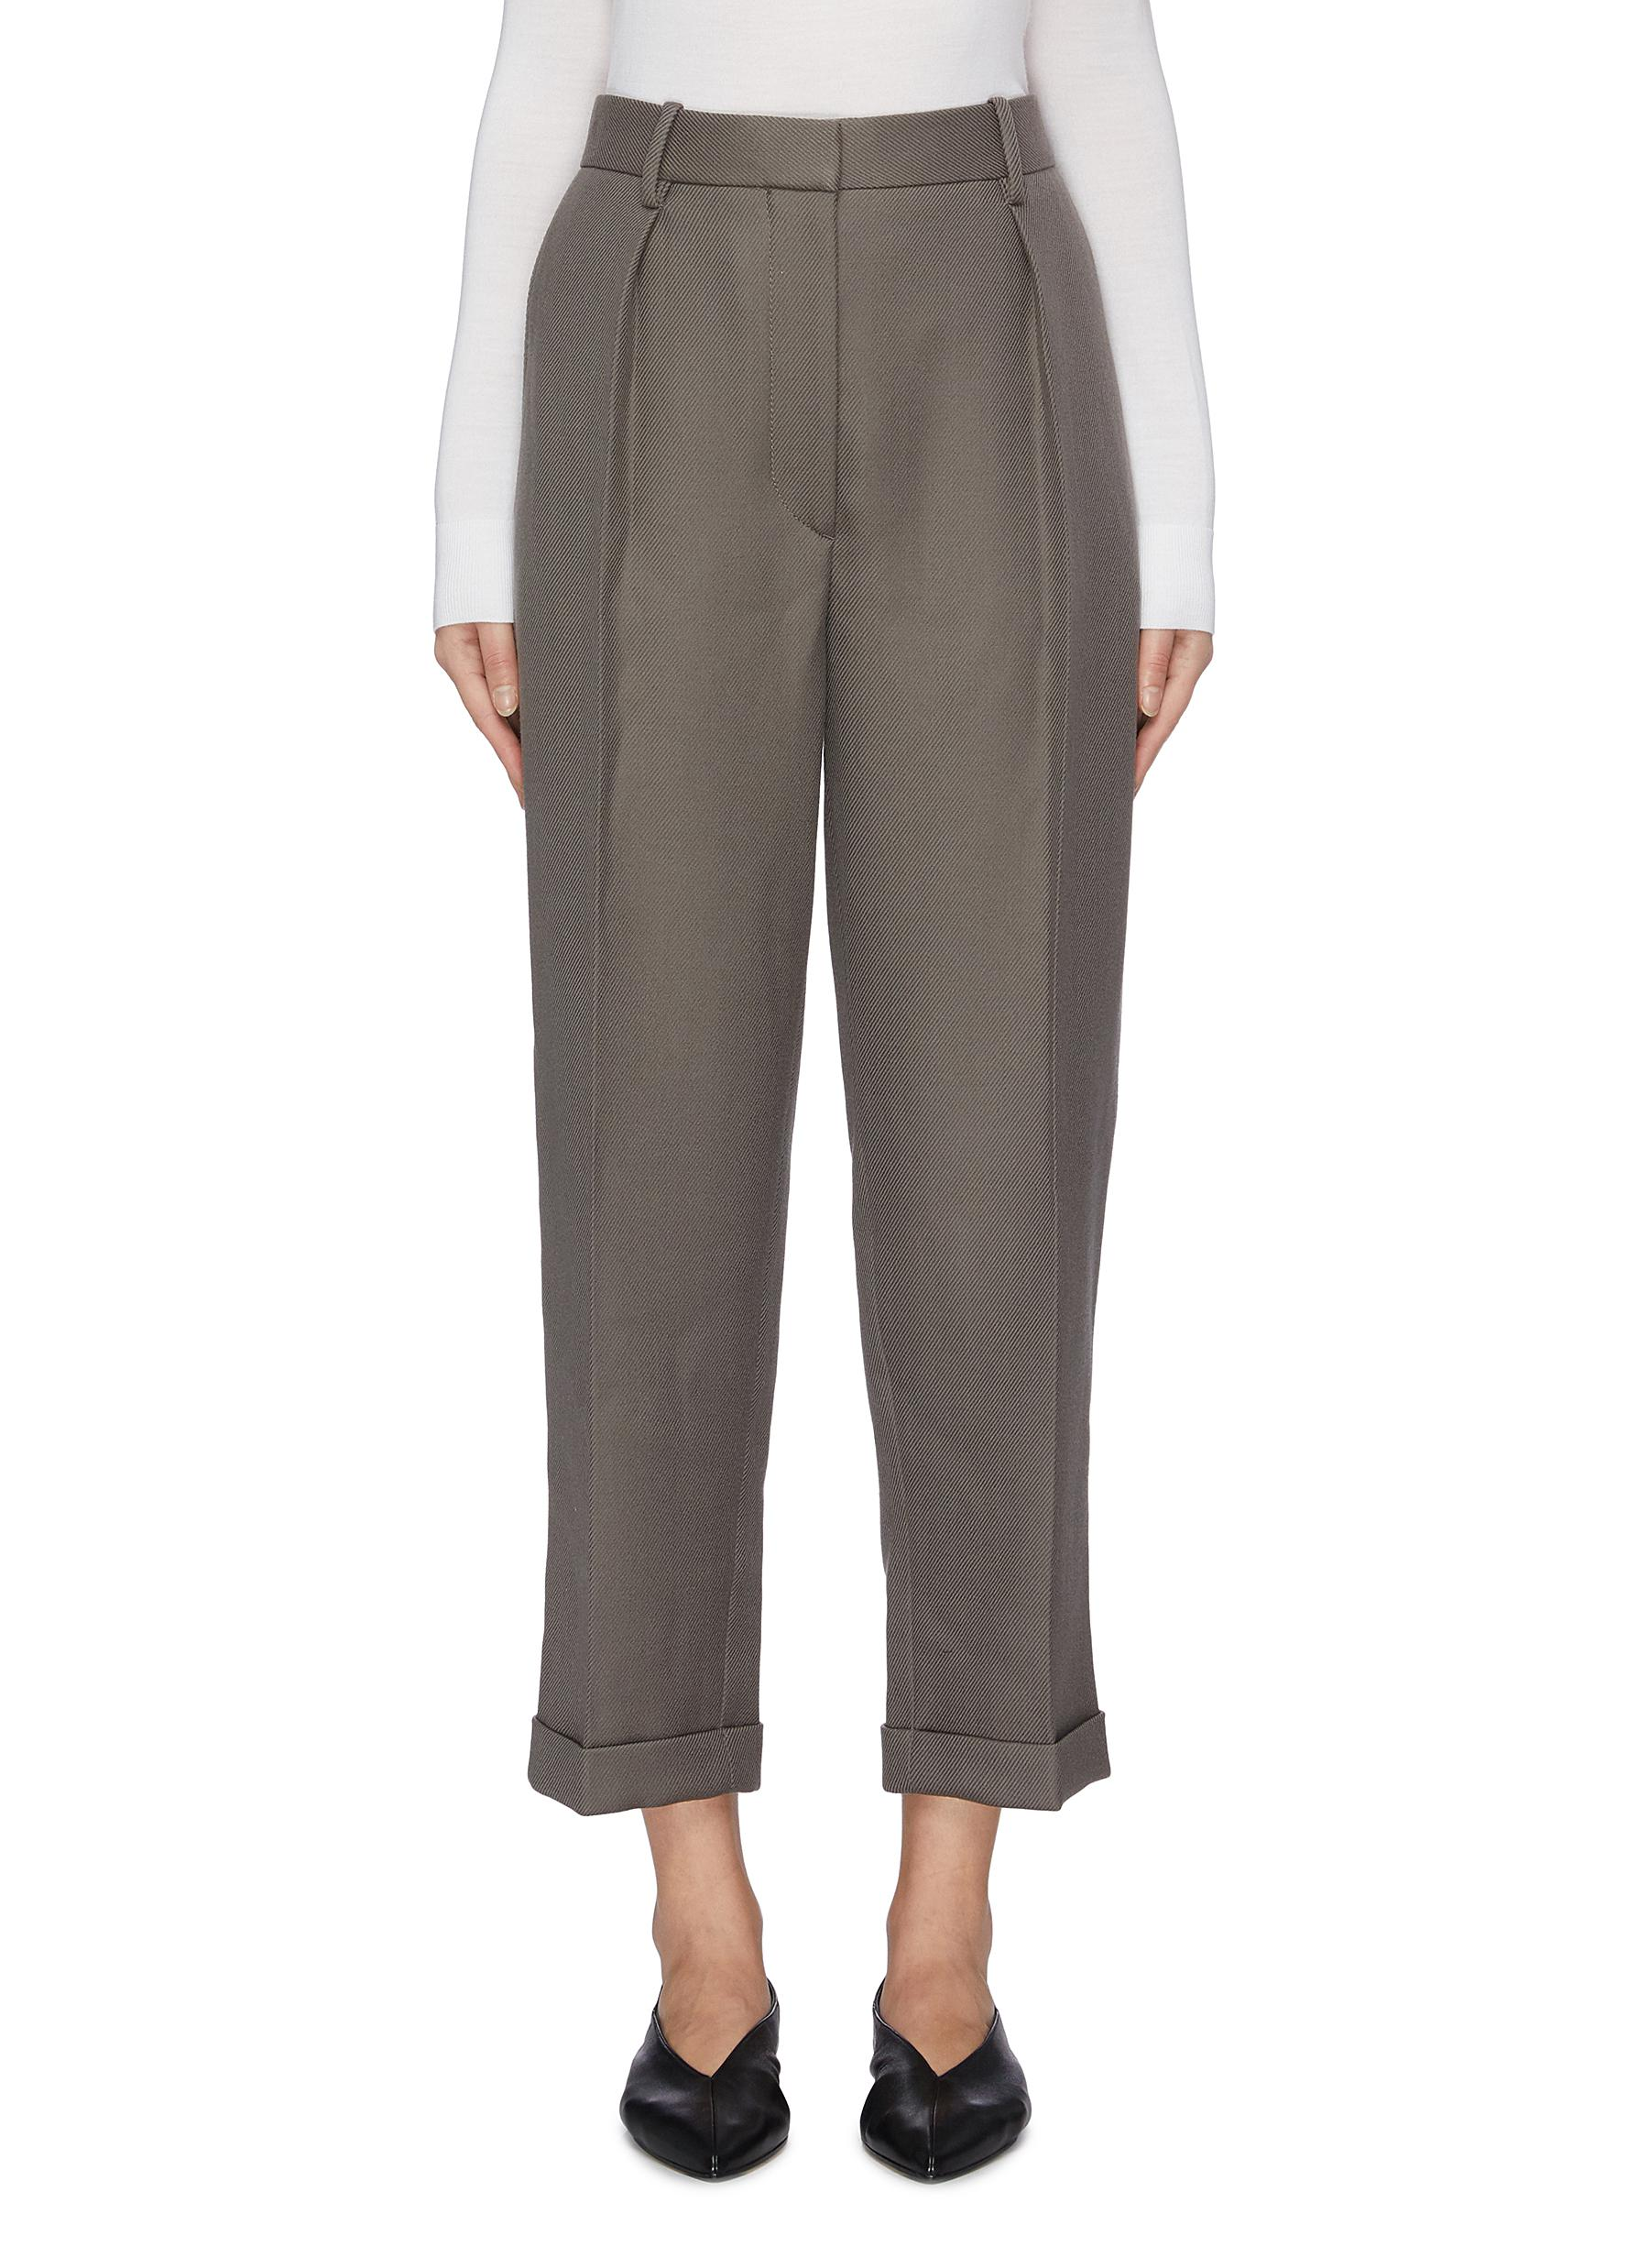 Milos rolled cuff pleated virgin wool pants by The Row